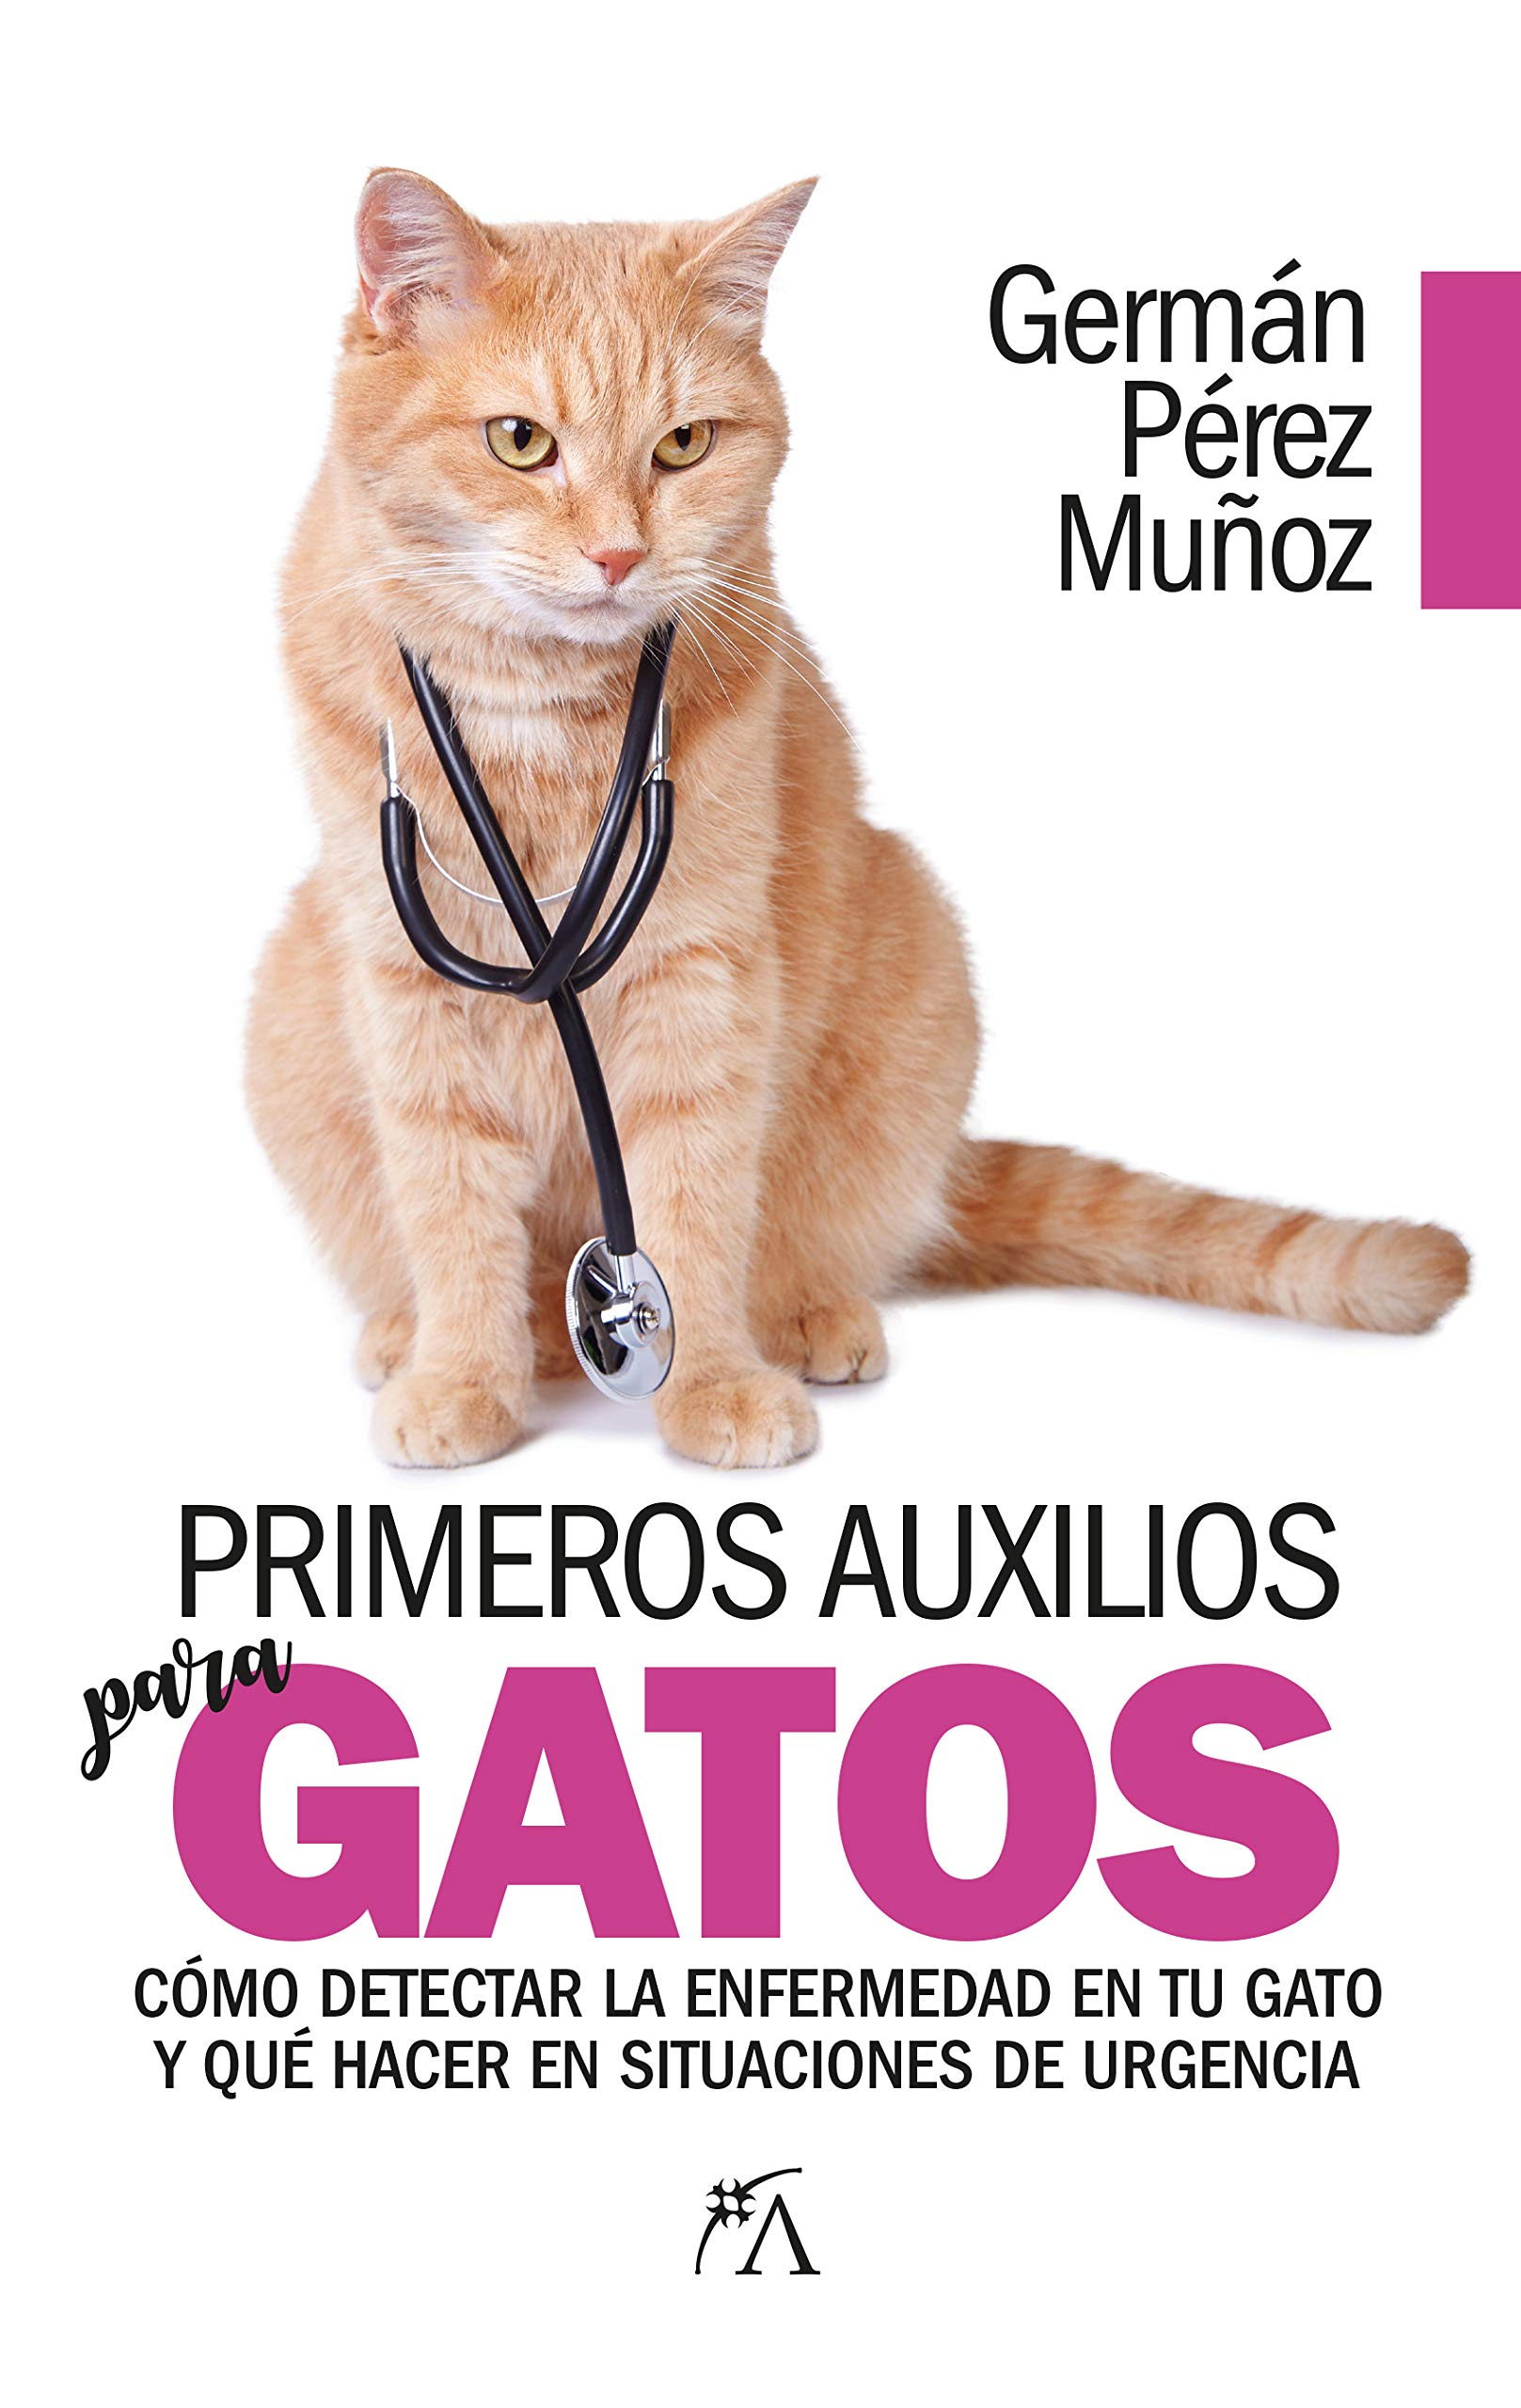 Primeros auxilios para gatos (Spanish Edition): German Perez ...